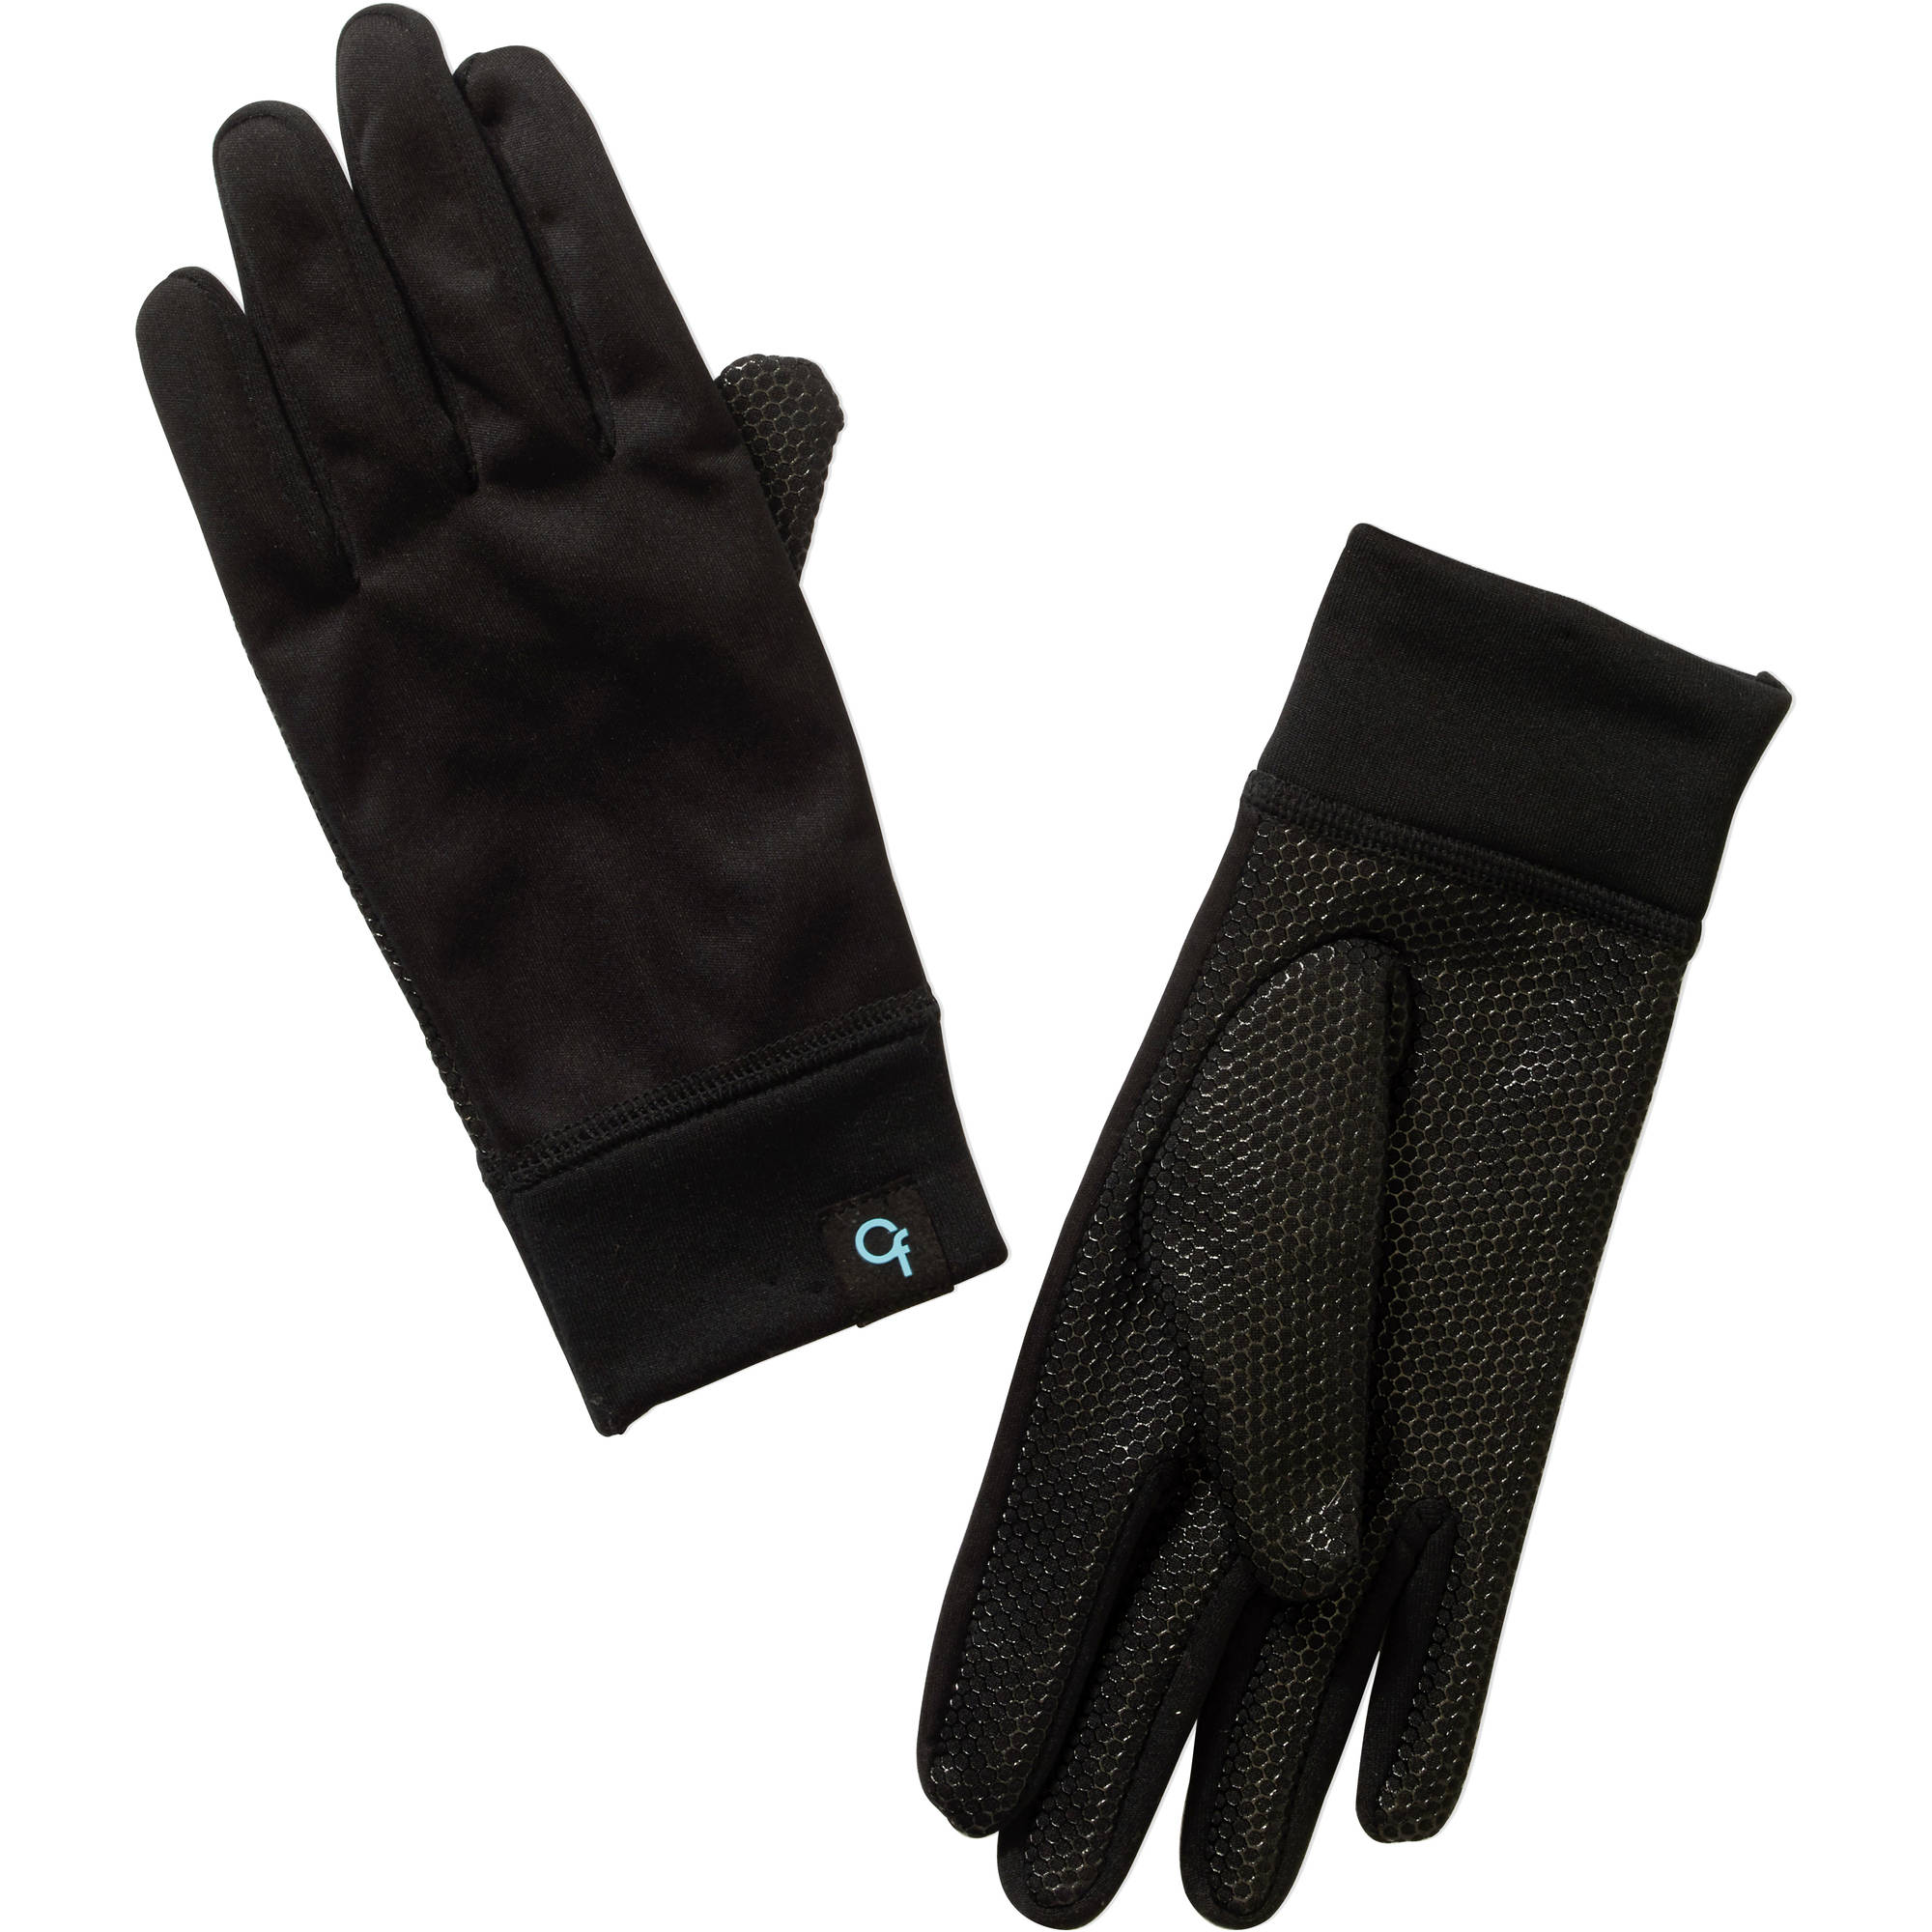 Cold Front Men's Gloves w/Silicone Grip Palm